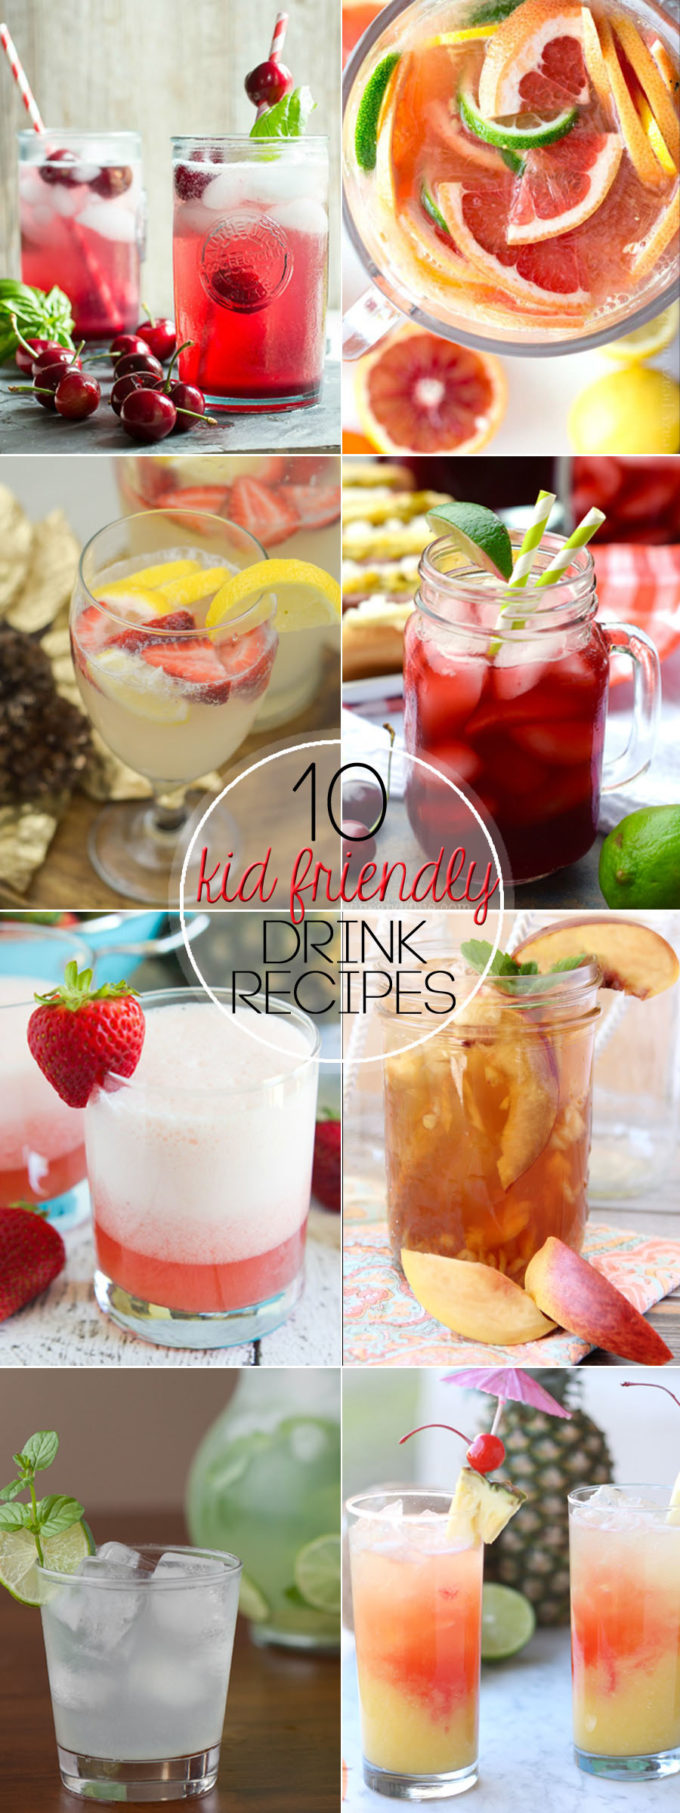 drinks kid friendly drink summer recipes cool refreshing easy tasty these party dinner thirst quench way shares meals mommy recipe